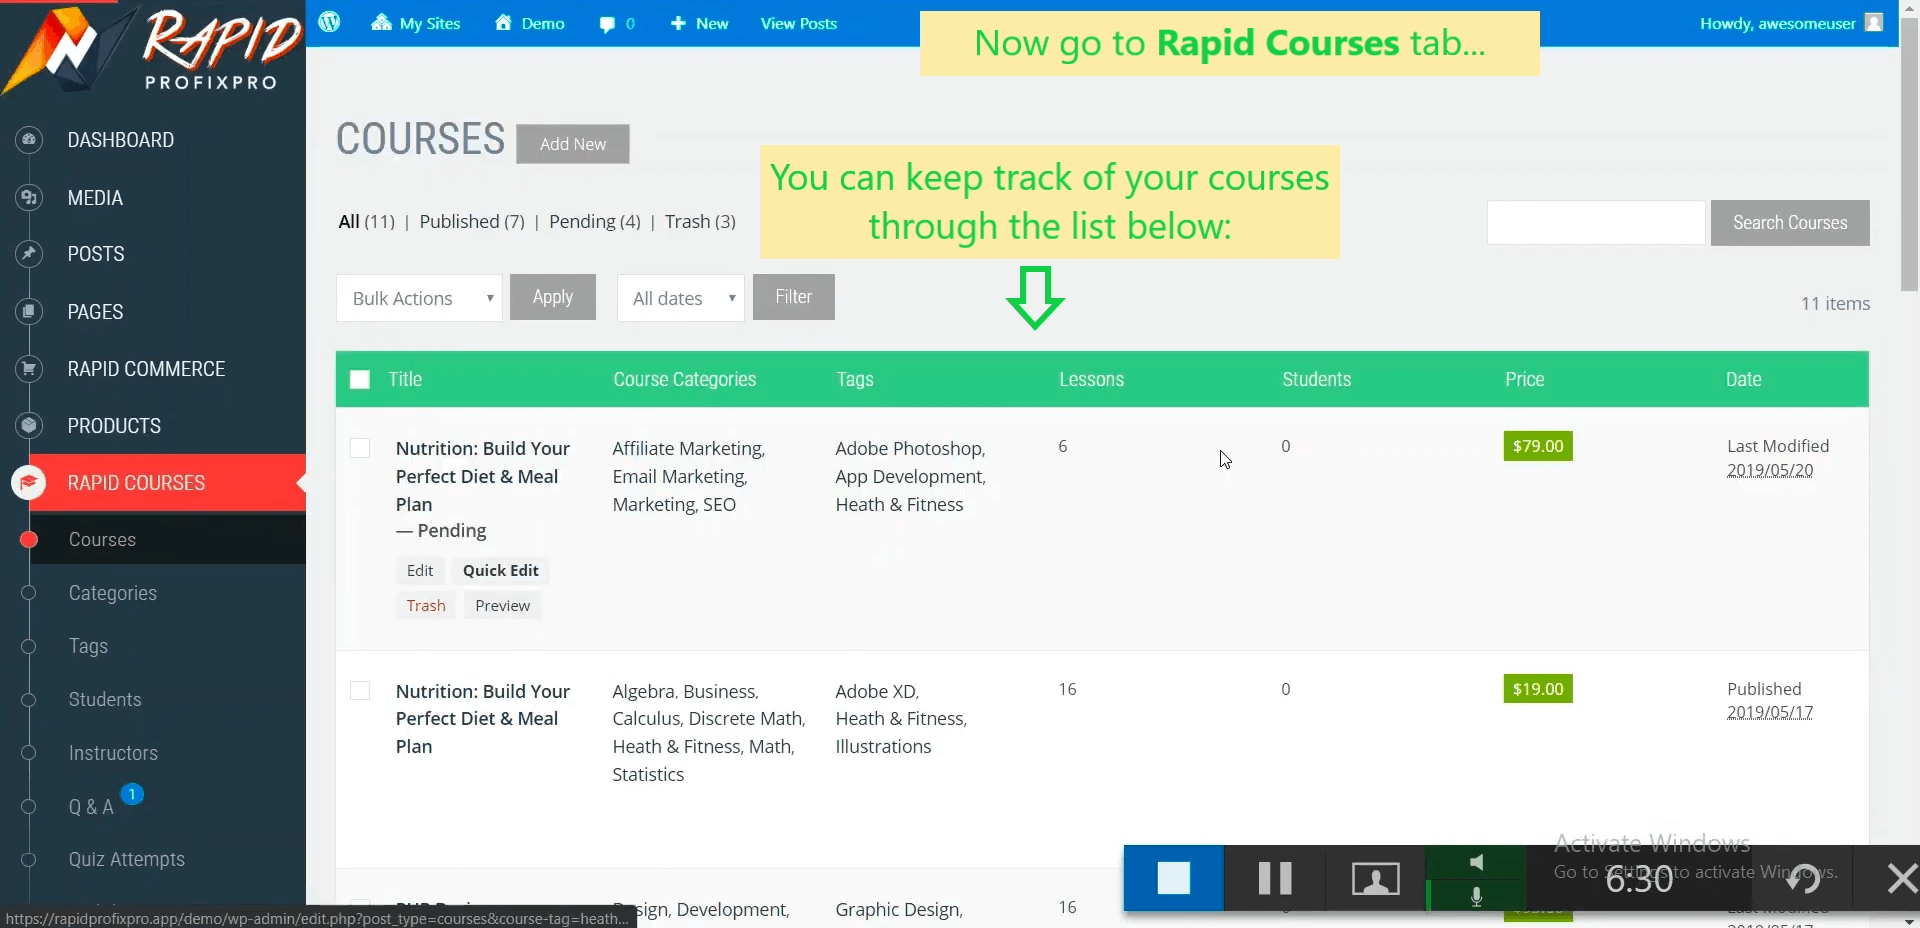 RapidProfixPro-Review-Step-3-1